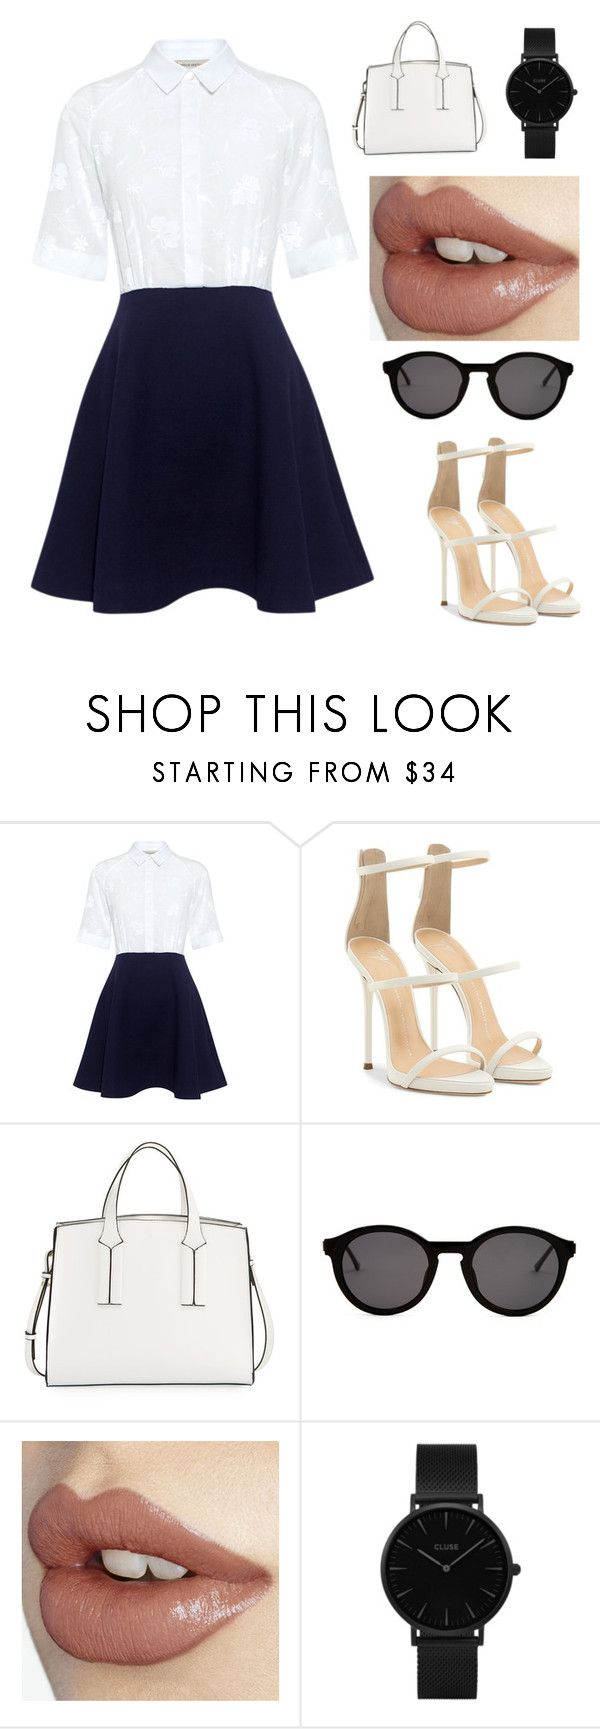 """""""The last day of school outfit"""" by emmalouloulovespolyvore ❤ liked on Polyvore featuring Paul & Joe Sister, Giuseppe Zanotti, French Connection, Thierry Lasry and CLUSE"""